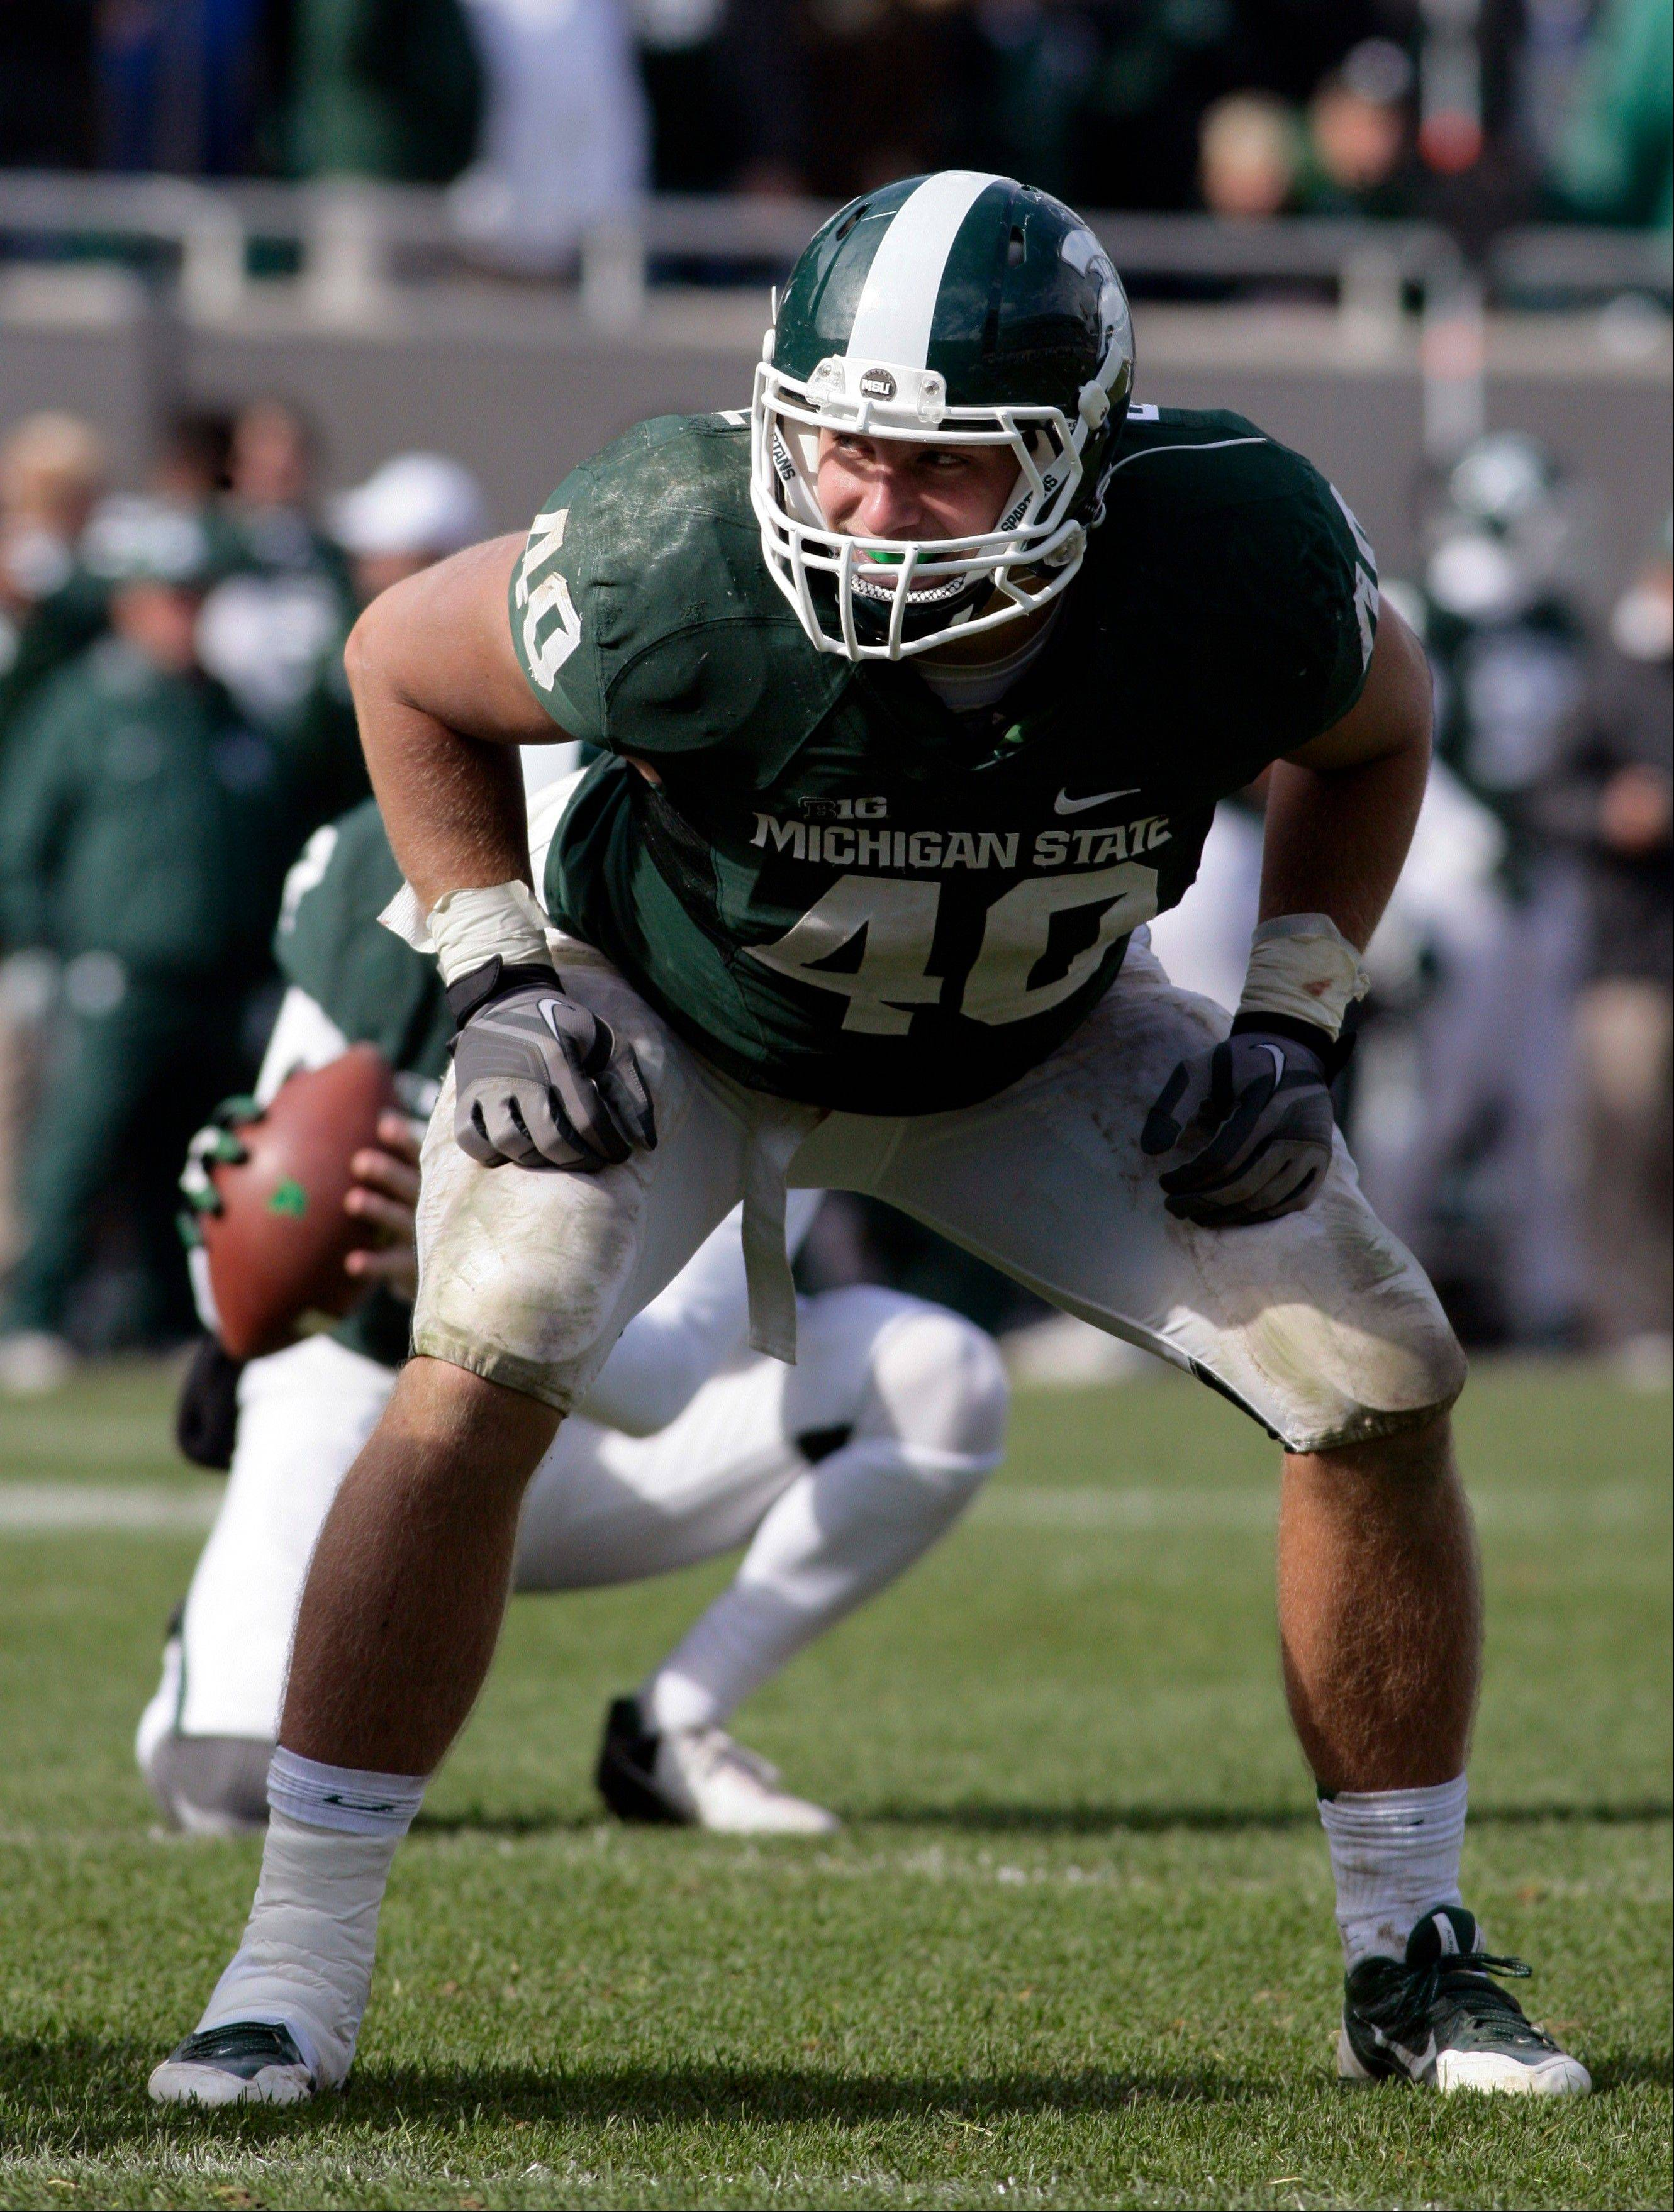 Michigan State linebacker Max Bullough has been suspended by the team and won�t play in the Rose Bowl. He finished the season with 76 tackles, including 9� for a loss.